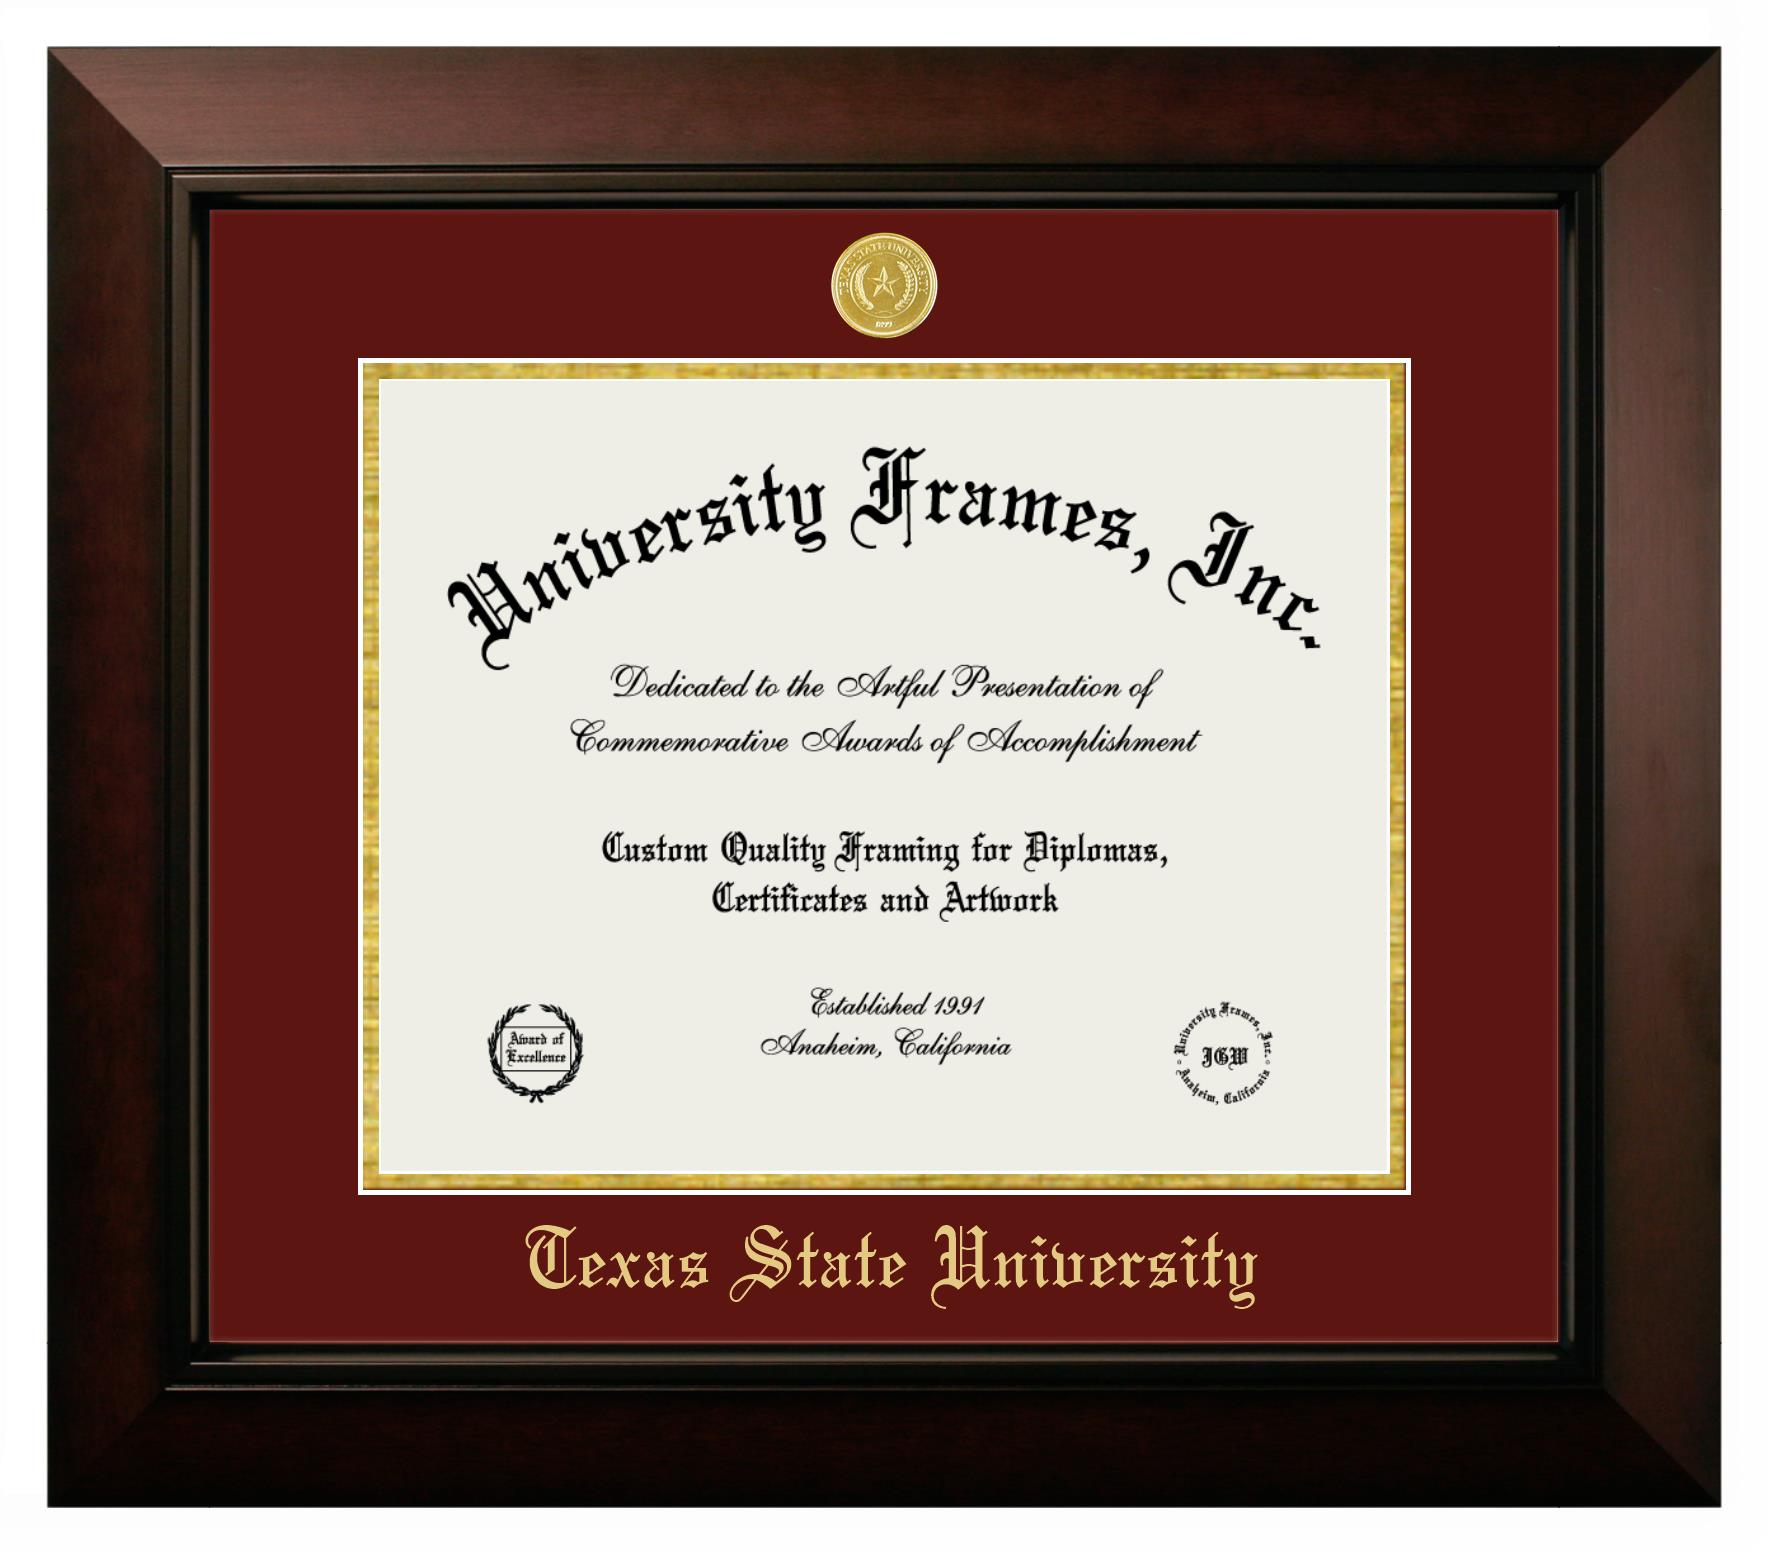 """Texas State University Texas State University Diploma Frame in Legacy Black Cherry with Maroon & Gold Mats for DOCUMENT: 11""""H X 14""""W"""